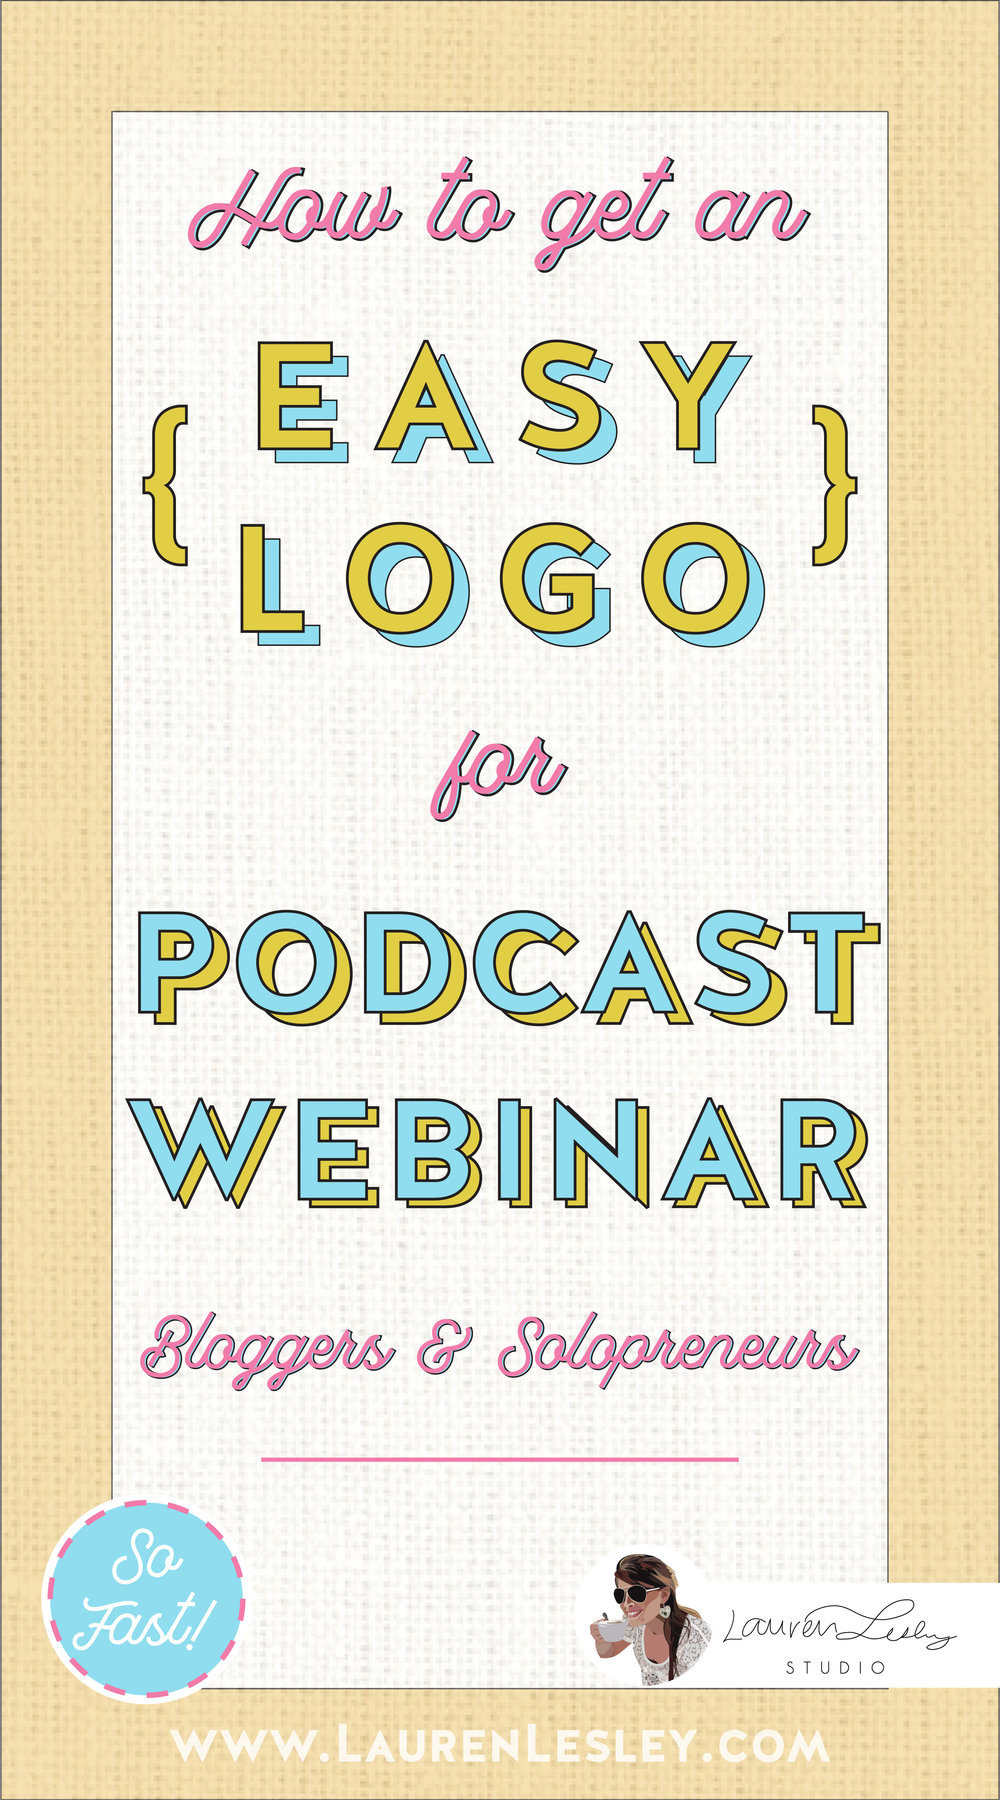 Pinterest_Podcast_Webinar-01.jpg